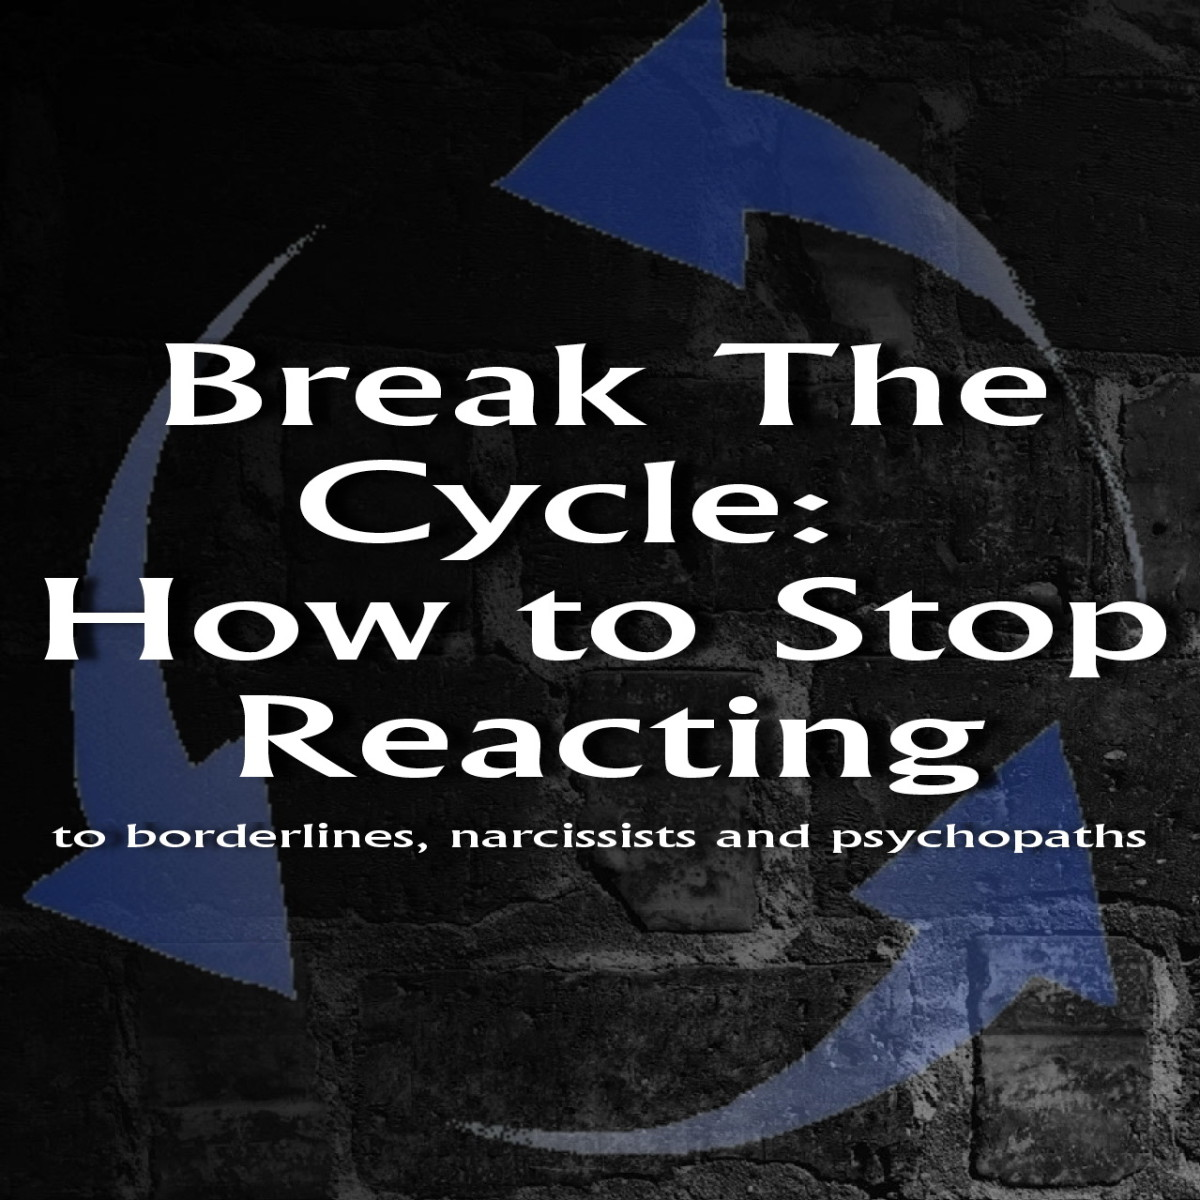 How to Stop Reacting: Break The Drama Cycle of Borderlines, Narcissists & Psychopaths